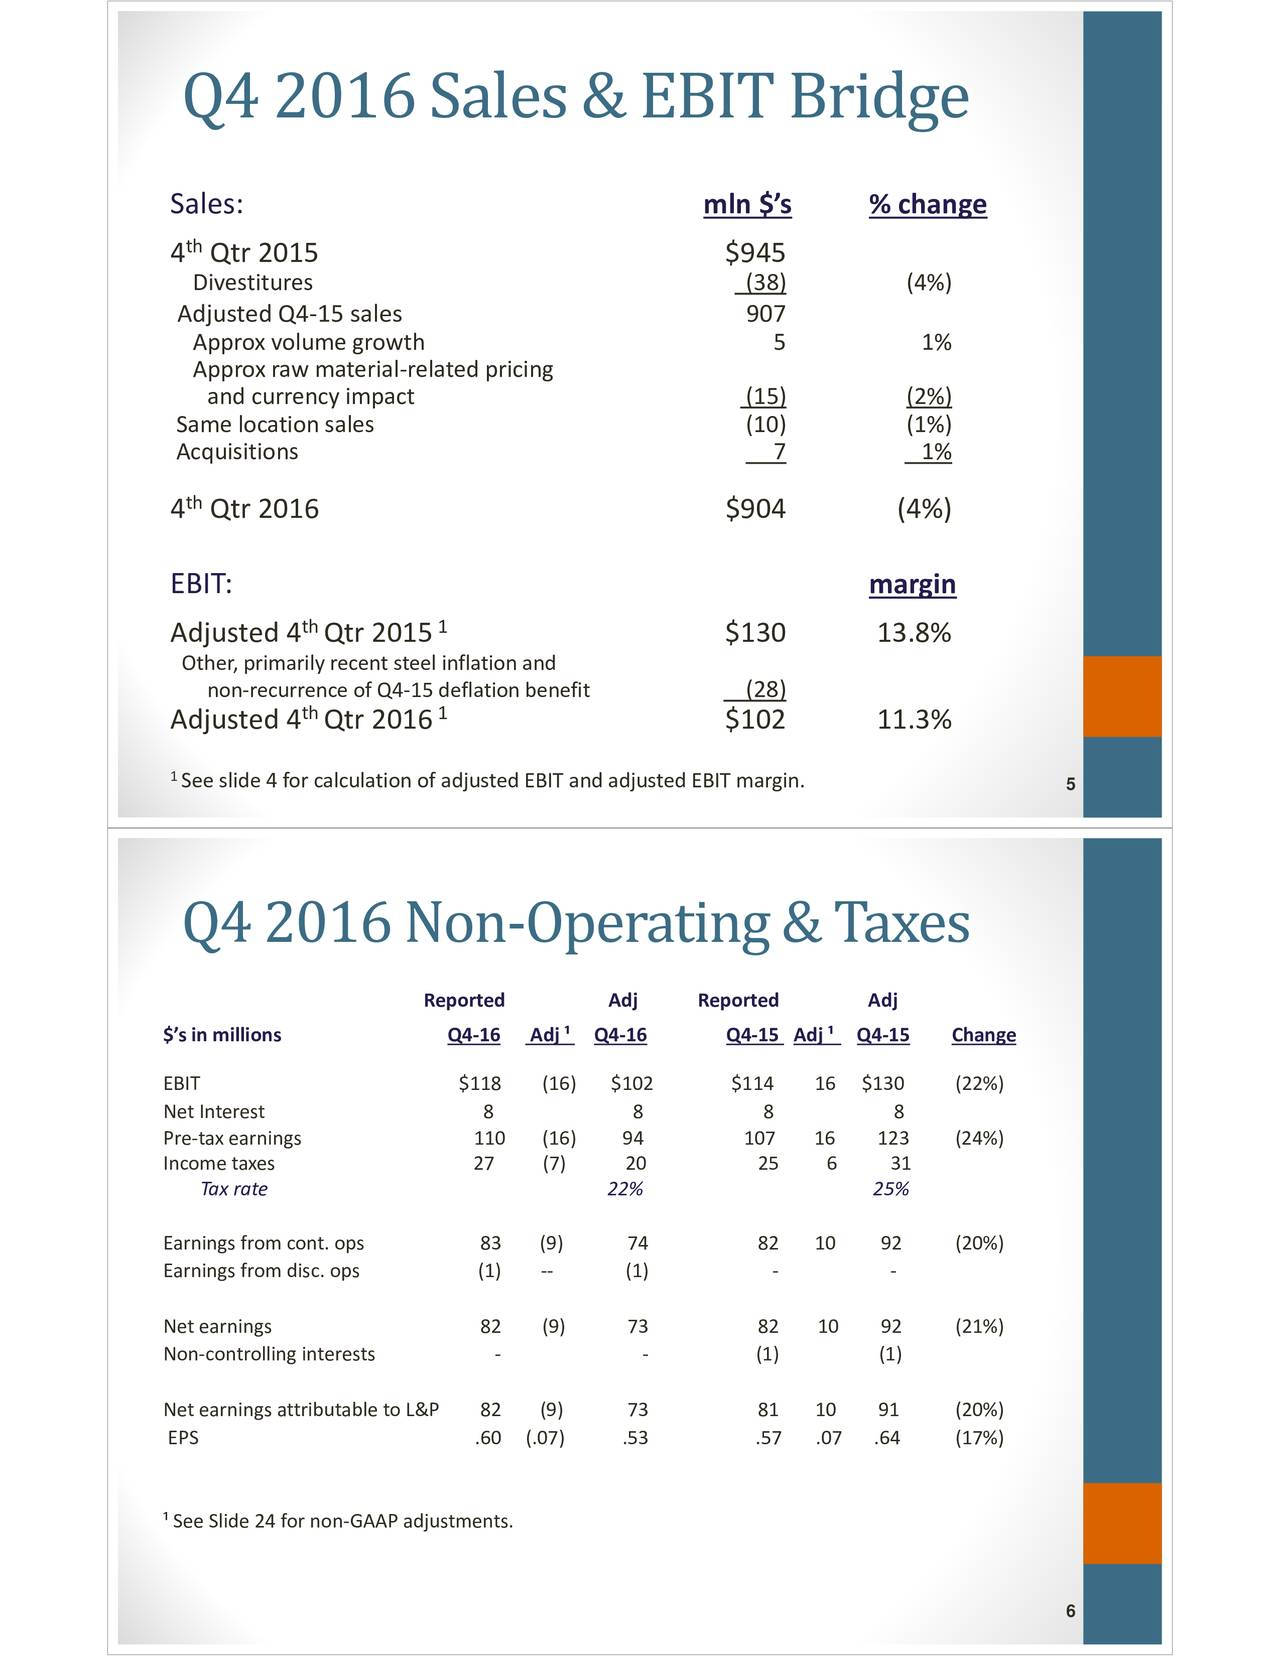 Sales: mln $s %change 4 Qtr 2015 $945 Divestitures (38) (4%) AdjustedQ415sales 907 Approx volumegrowth 5 1% Approx rawmaterialrelatedpricing andcurrencyimpact (15) (2%) Samelocationsales (10) (1%) Acquisitions 7 1% th 4 Qtr 2016 $904 (4%) EBIT: margin Adjusted4 Qtr 2015 1 $130 13.8% Other,primarilyrecentsteelinflationand nonrecurrenceofQ415deflationbenefit (28) th 1 Adjusted4 Qtr 2016 $102 11.3% 1Seeslide4forcalculationofadjustedEBITandadjustedEBITmargin. 5 Q4 2016 NonOperating & Taxes Reported Adj ReportedAdj $sinmillions Q416 Adj  Q416 Q415 Adj  Q415 Change EBIT $118 (16) $102 $114 16 $130 (22%) NetInterest 8 8 8 8 Pretaxearnings 110 (16) 94 10716123 (24%) Incometaxes 27 (7) 20 25 6 31 Taxrate 22% 25% Earningsfromcont.ops 83 (9) 74 82 10 92 (20%) Earningsfromdisc.ops (1)  (1) Netearnings 82 (9) 73 82 10 92 (21%) Noncontrollinginterests   (1) (1) NetearningsattributabletoL&82(9) 73 81 10 91 (20%) EPS .60 (.07) .53 .57.0.64 (17%) SeeSlide24fornonGAAPadjustments. 6